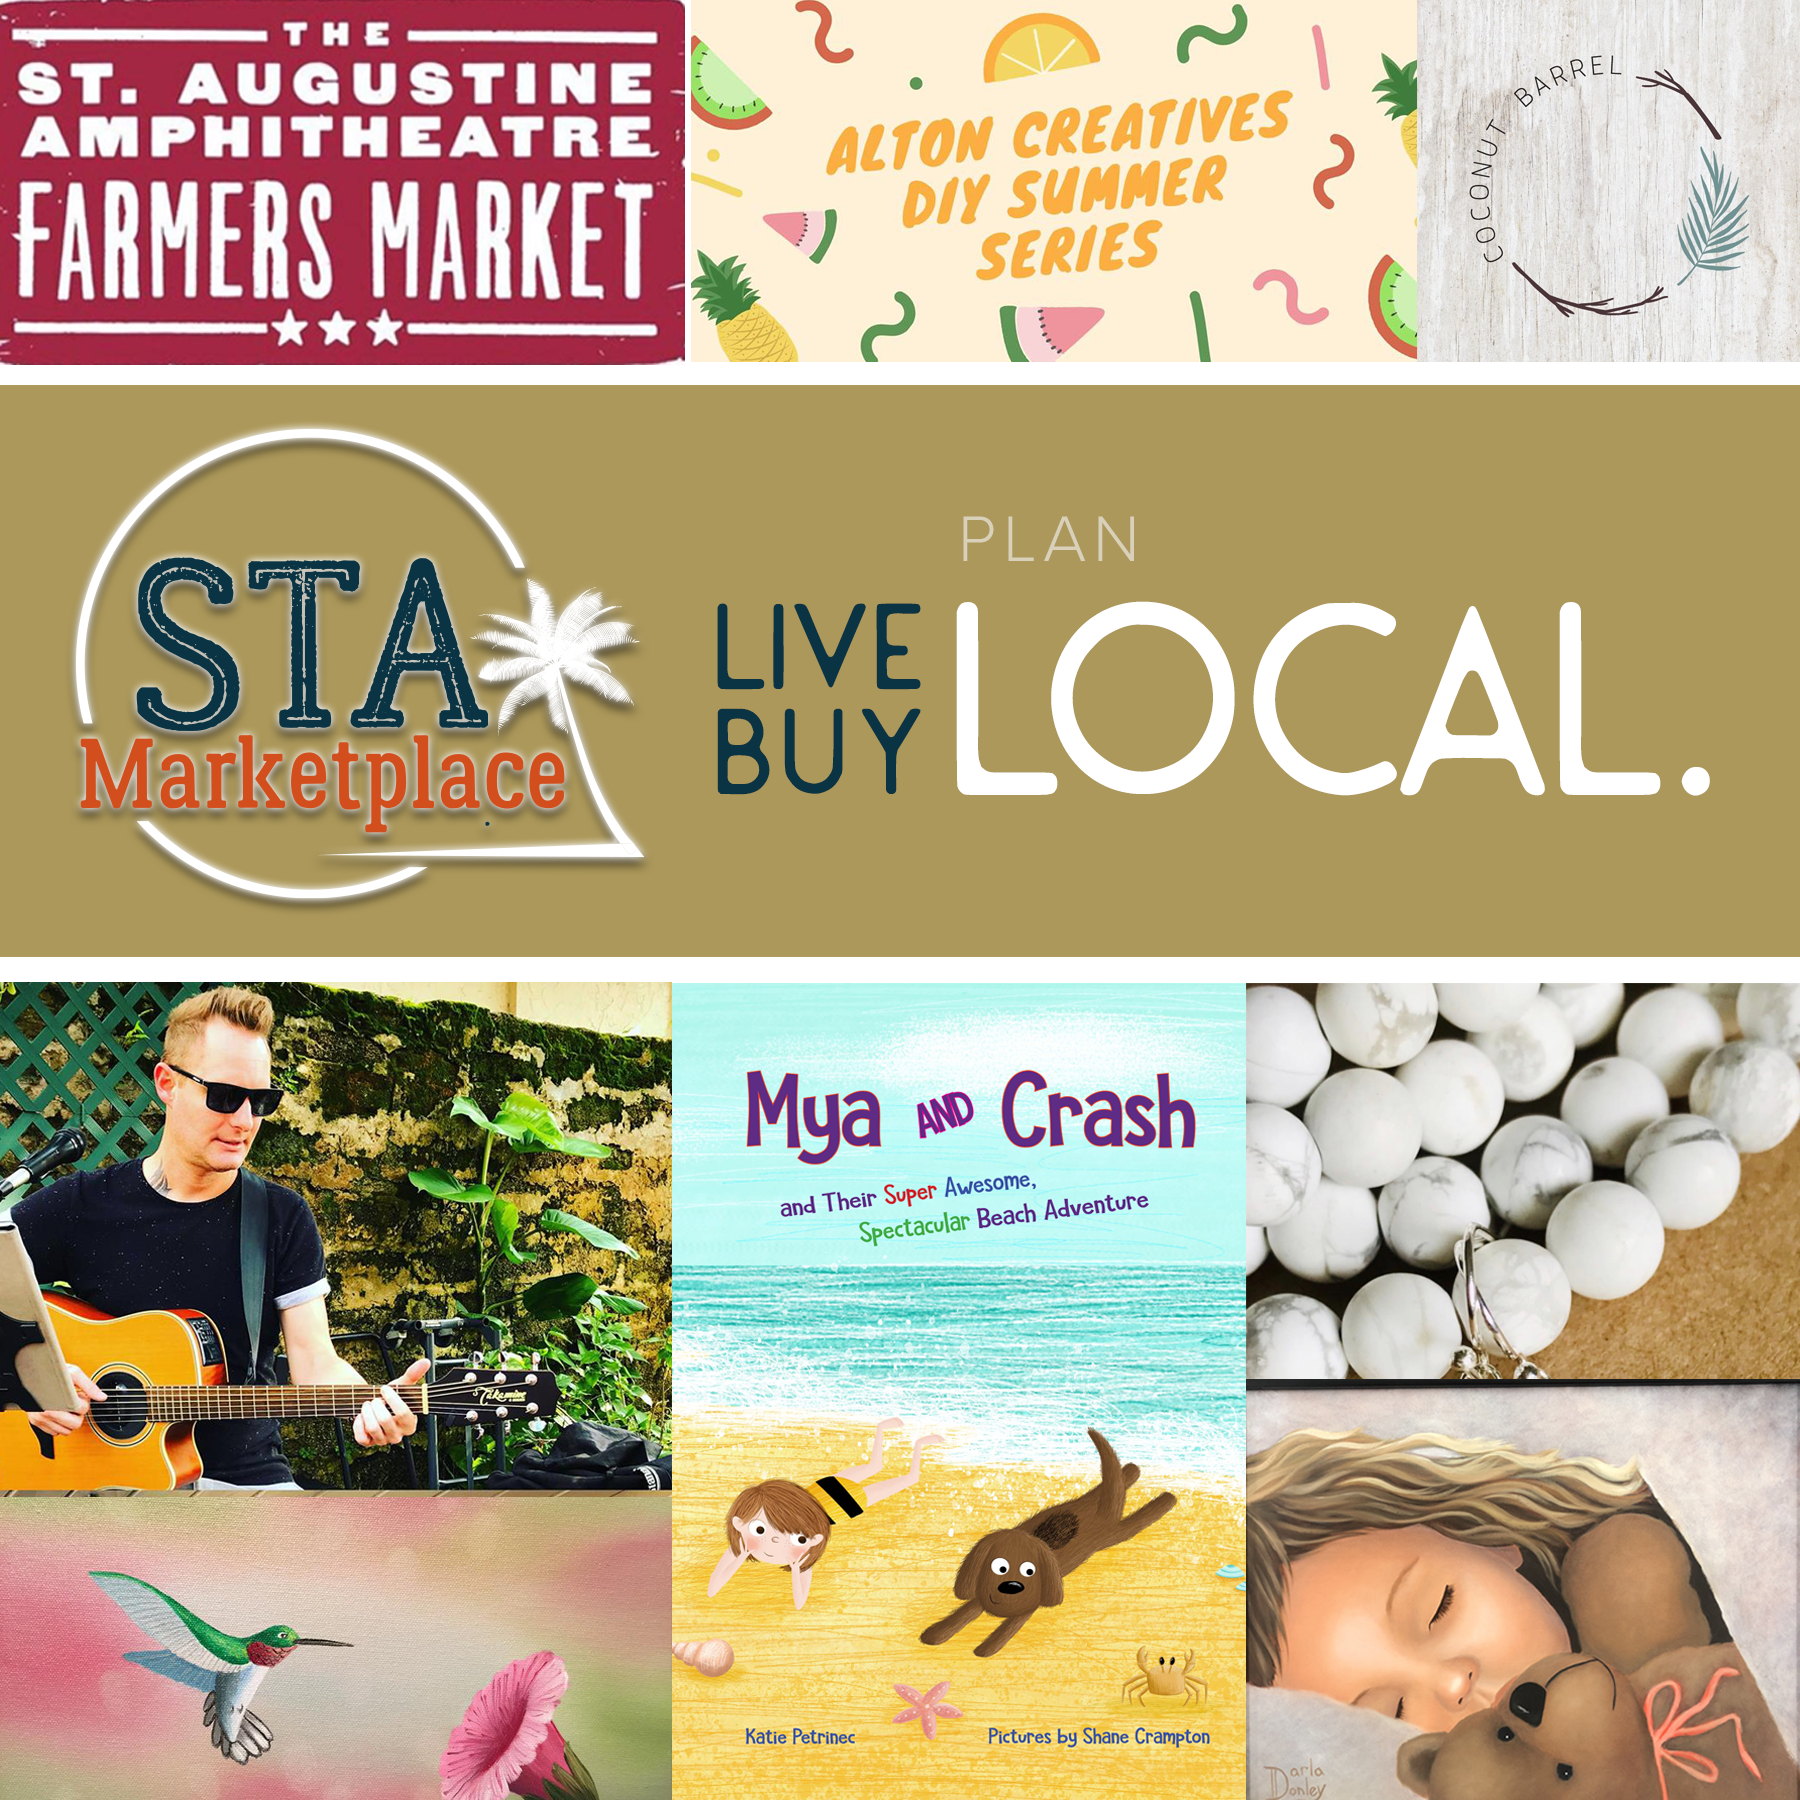 Plan to Live Local Buy Local - STA Marketplace - June 27th.png